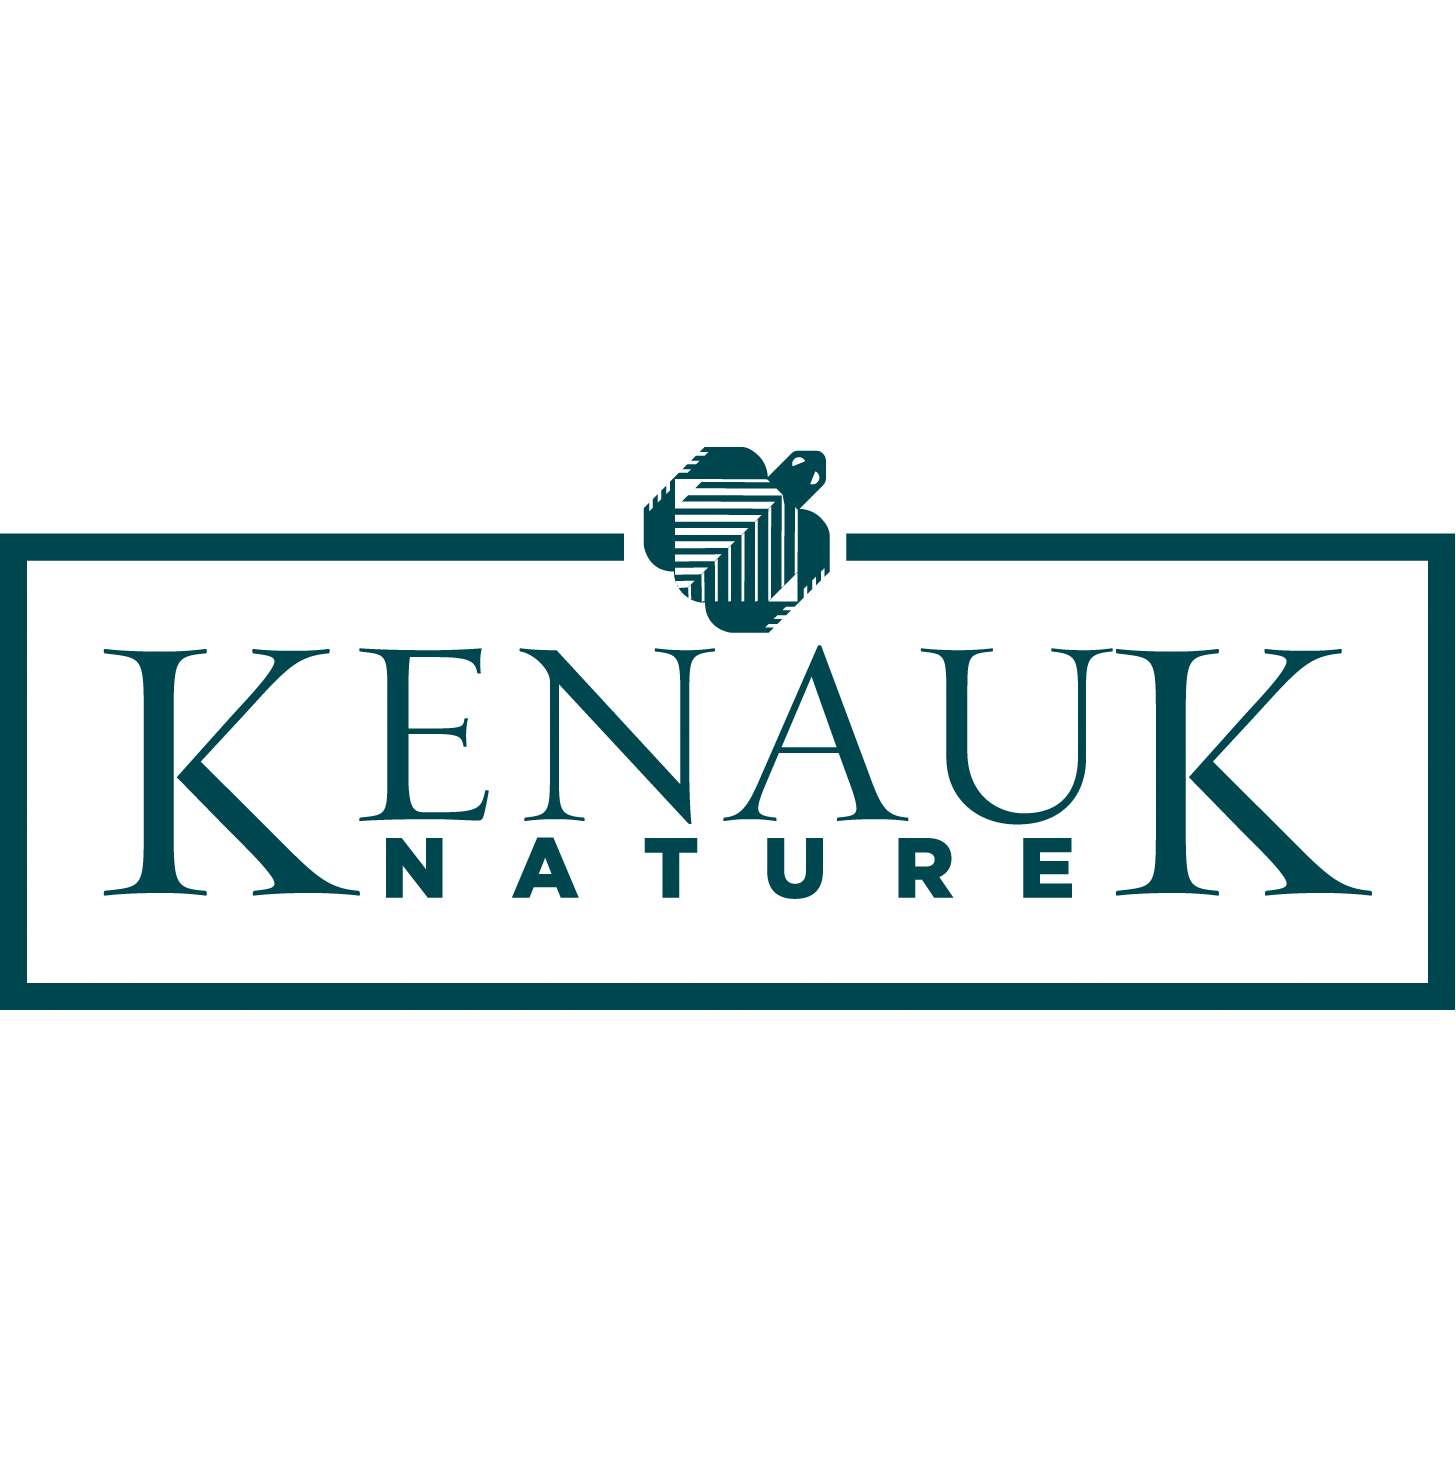 Kenauk Nature